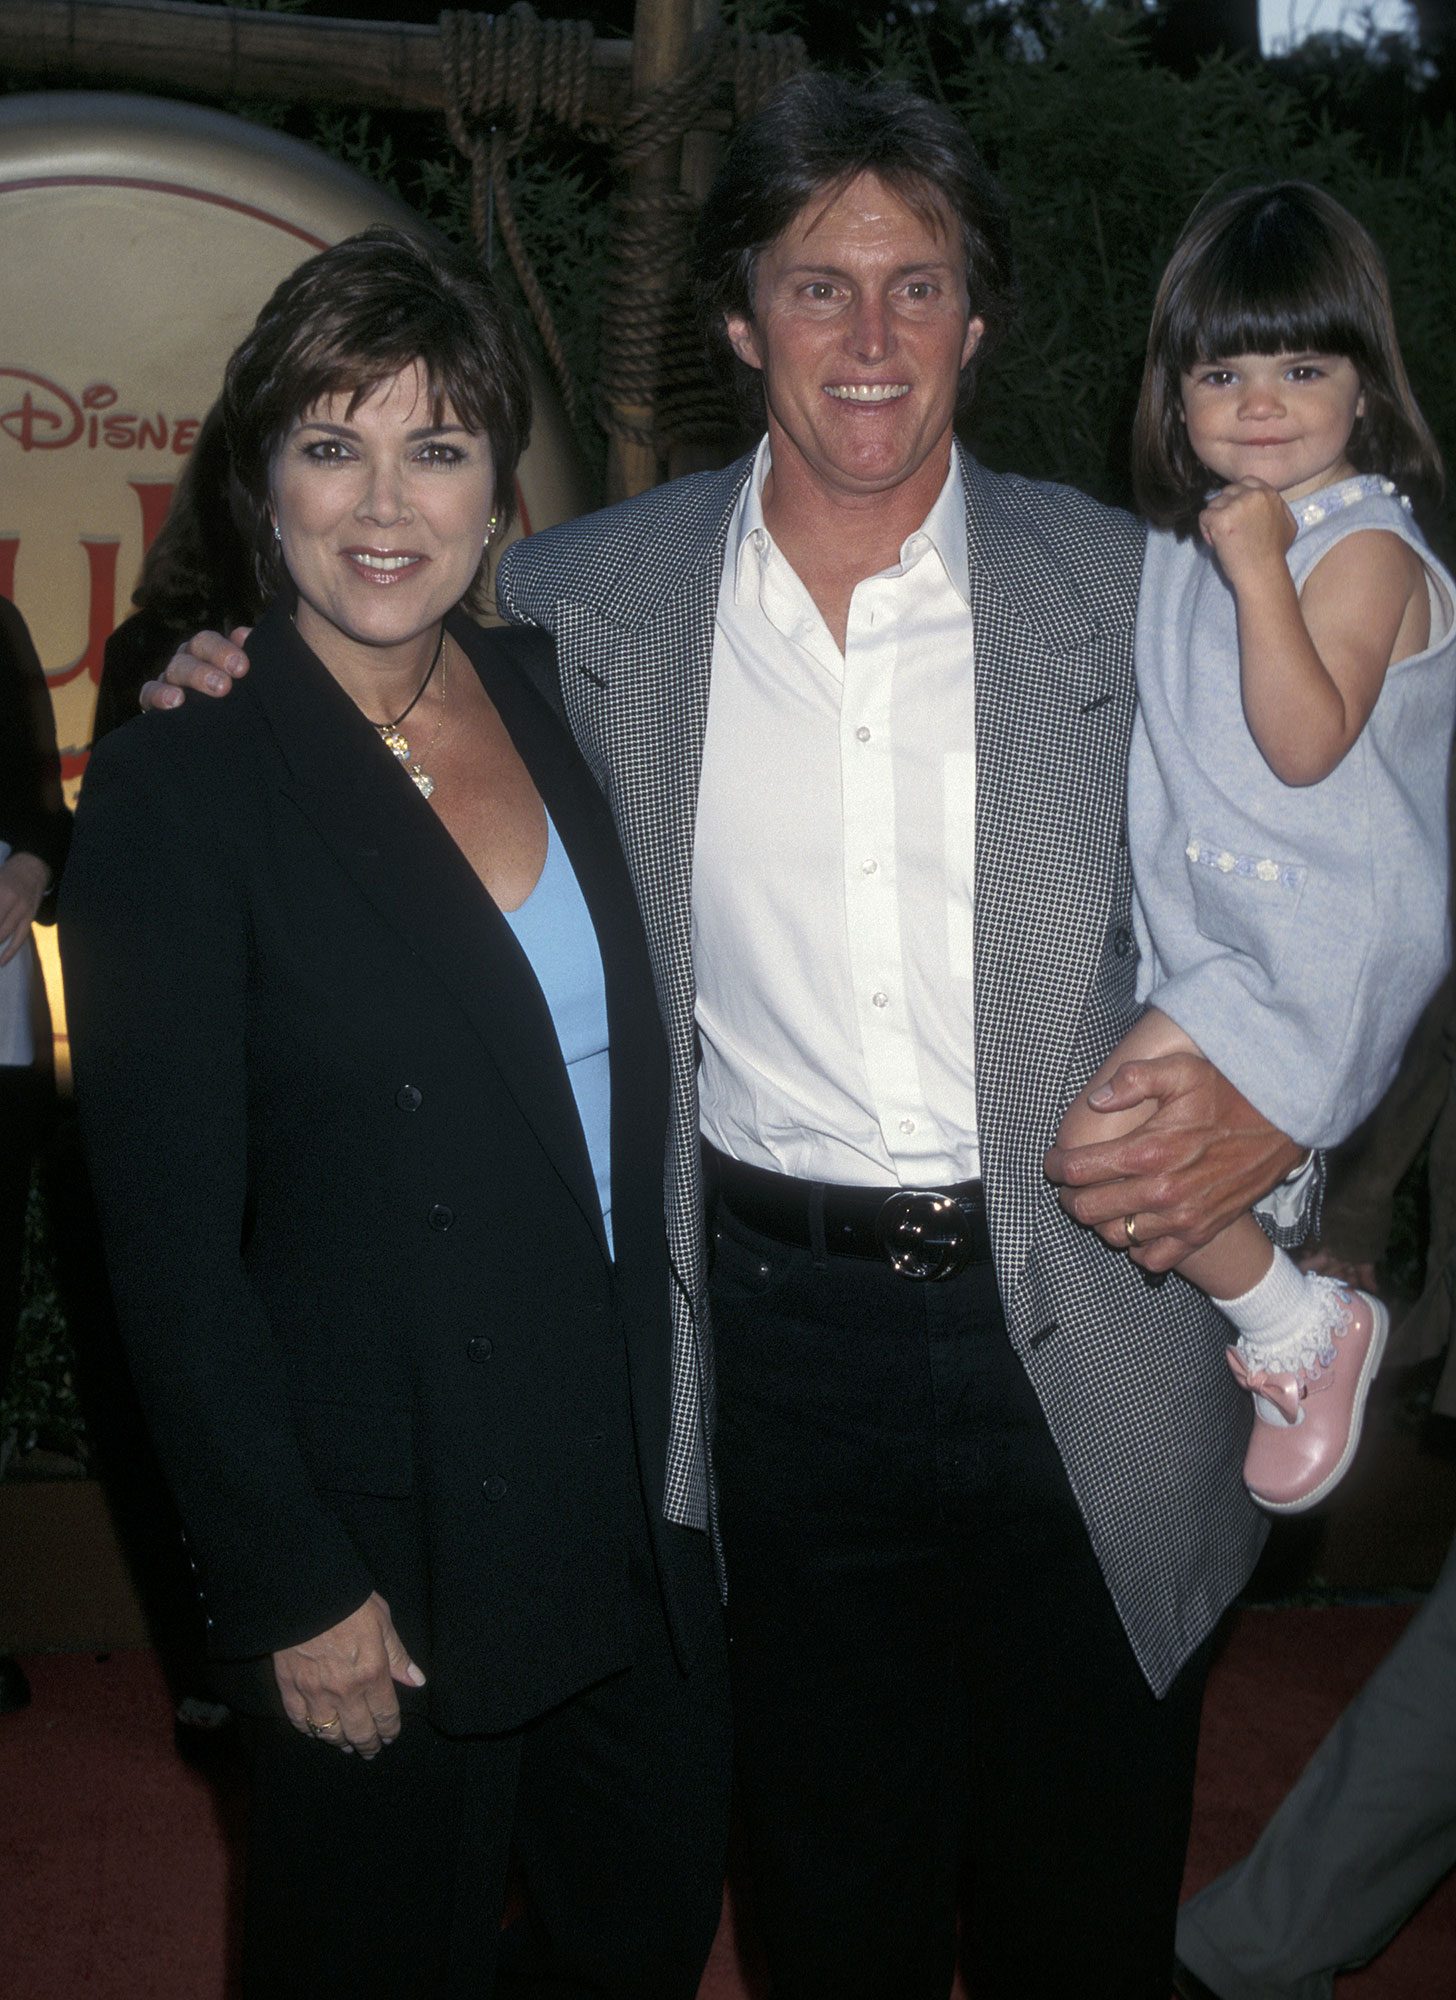 Kendall Jenner through the years - Kendall was just 2 years old when she and her parents, Kris and Caitlyn , attended the 1998 premiere of Disney's Mulan .